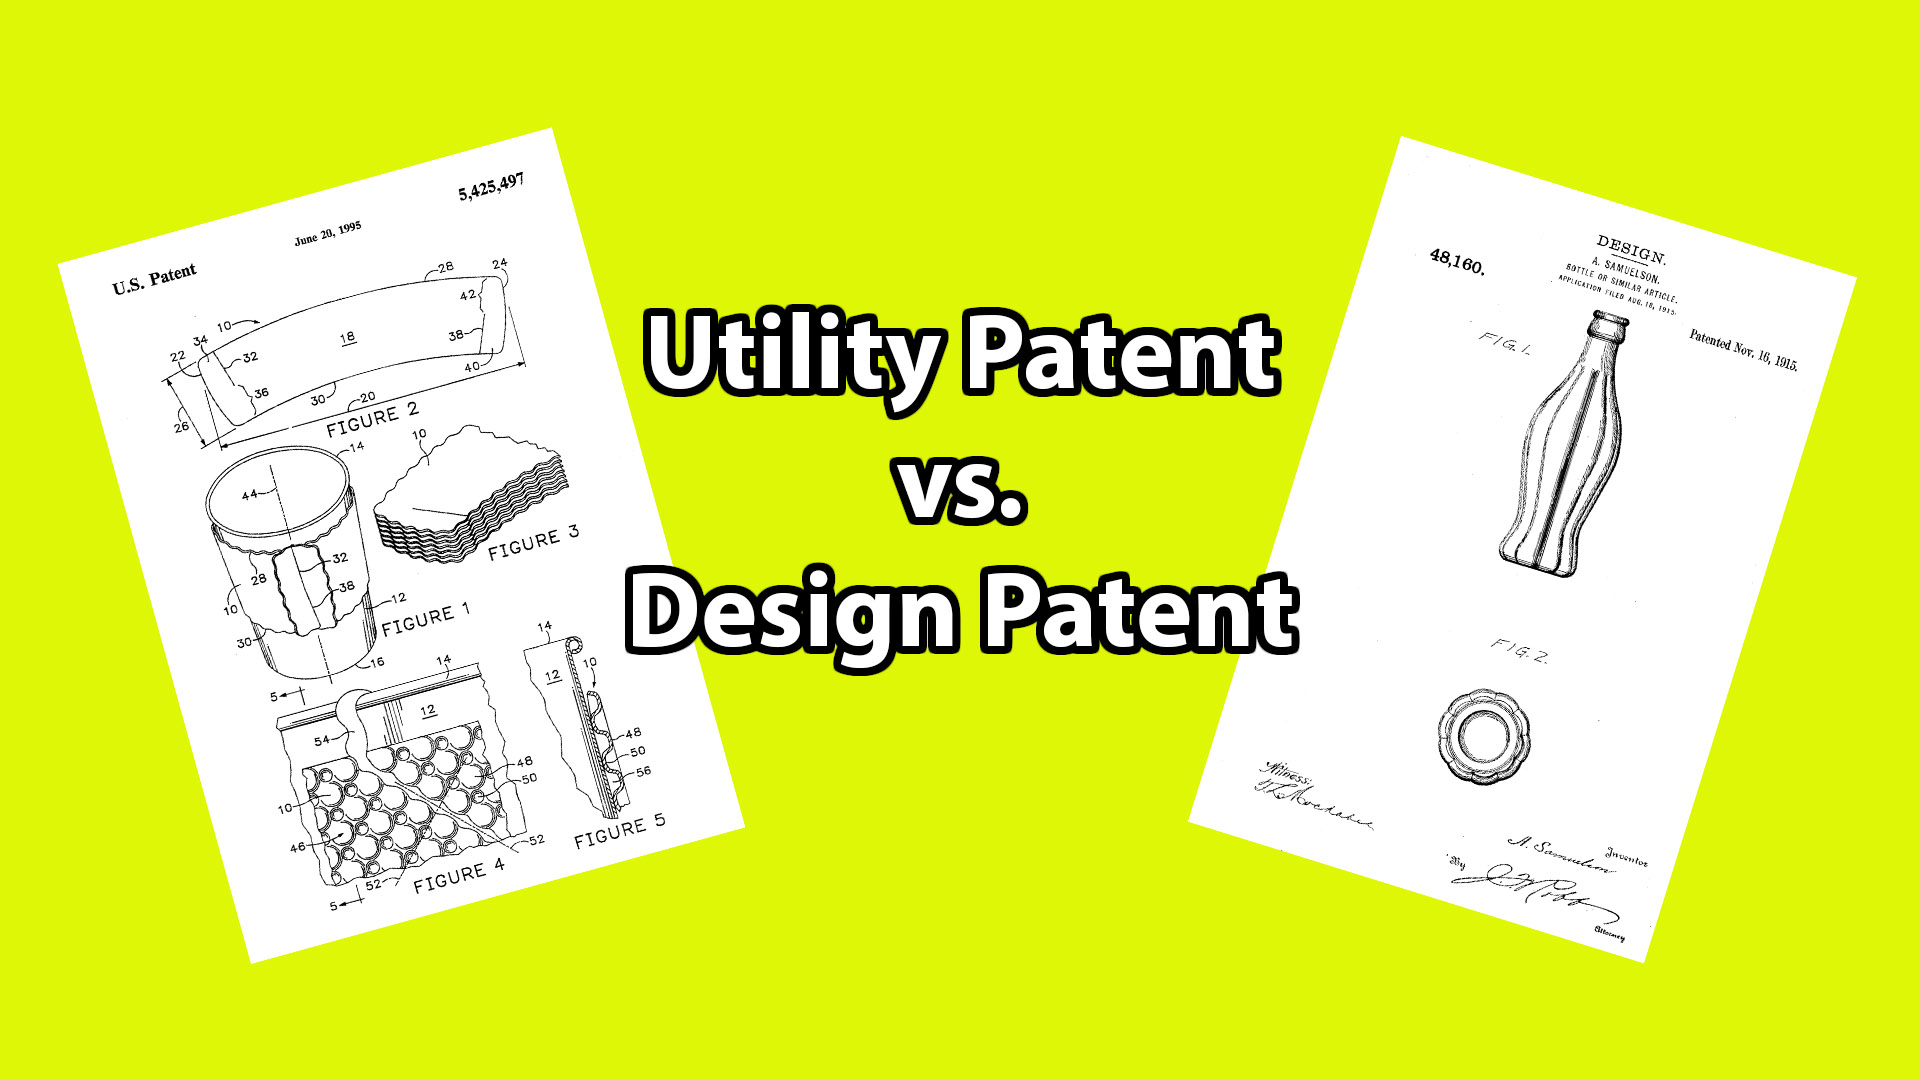 how to tell if a patent is utility or design